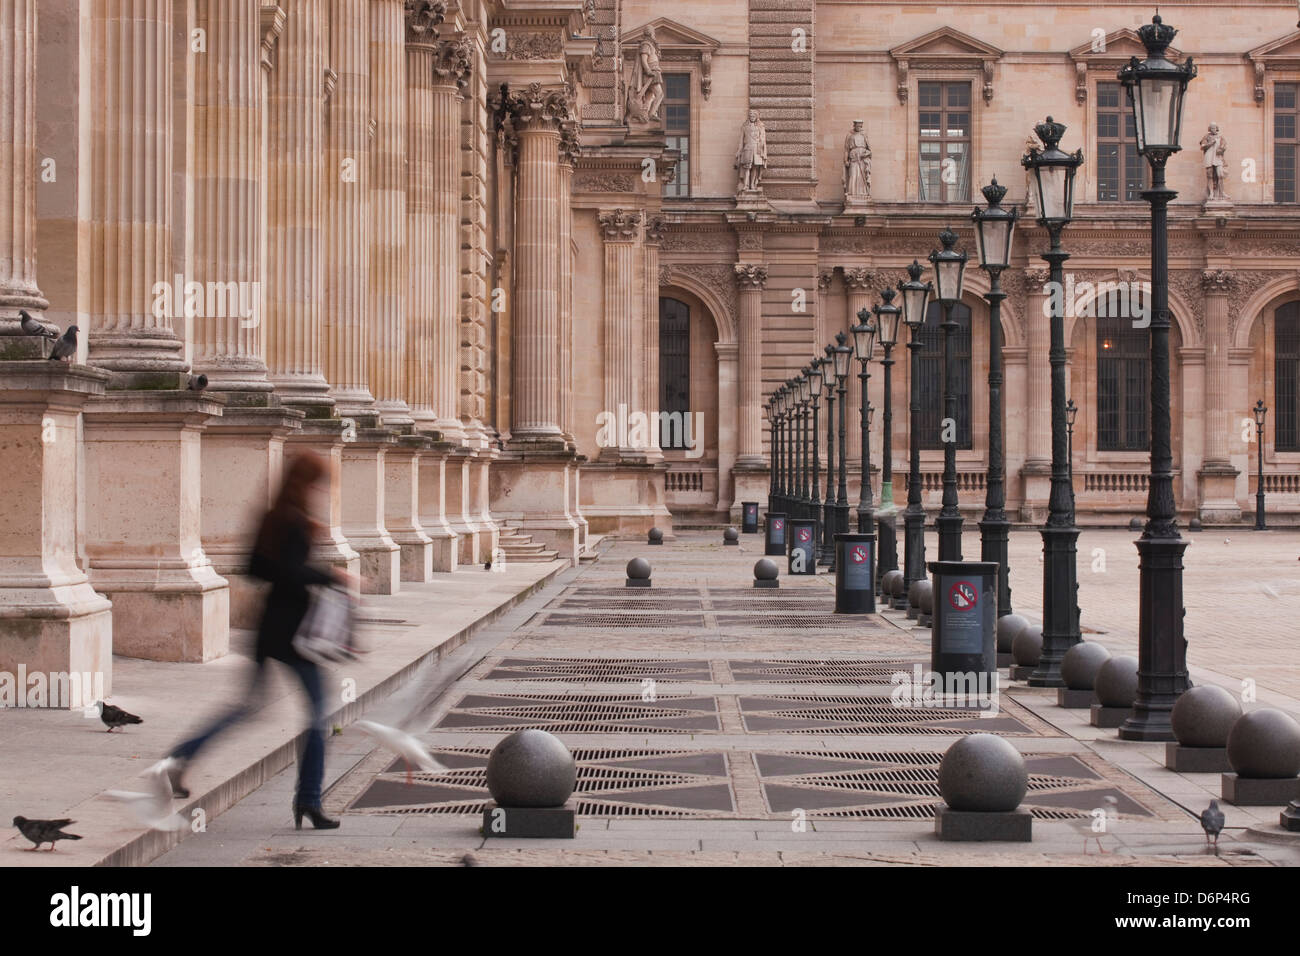 A woman walks through the Louvre Museum in Paris, France, Europe Stock Photo